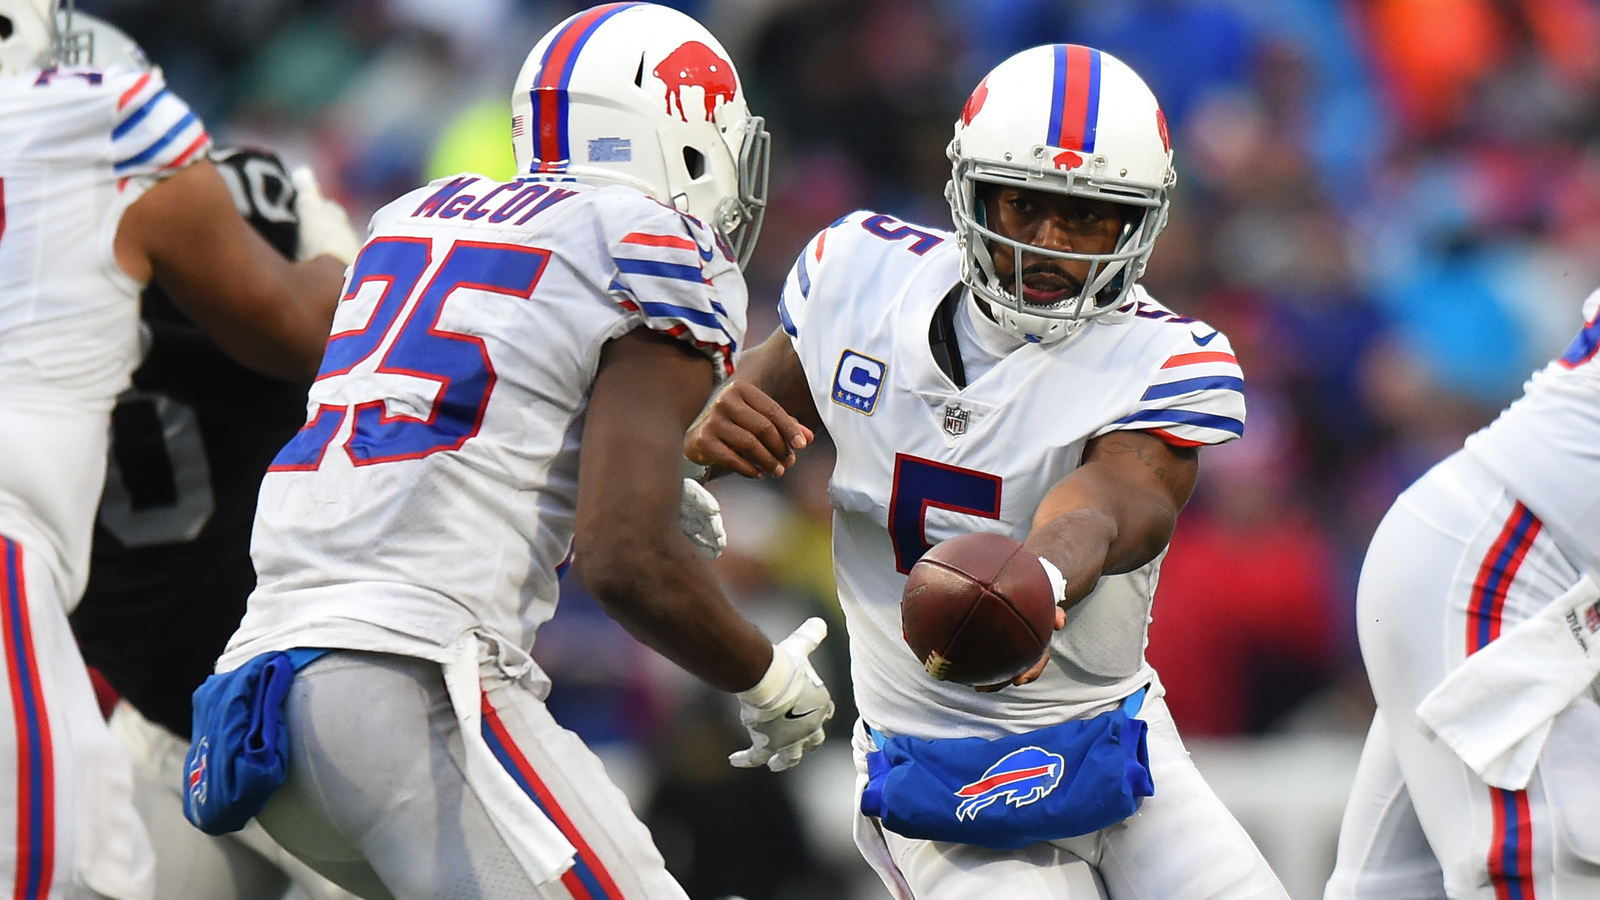 LeSean McCoy Tyrod Taylor benching surprised everyone